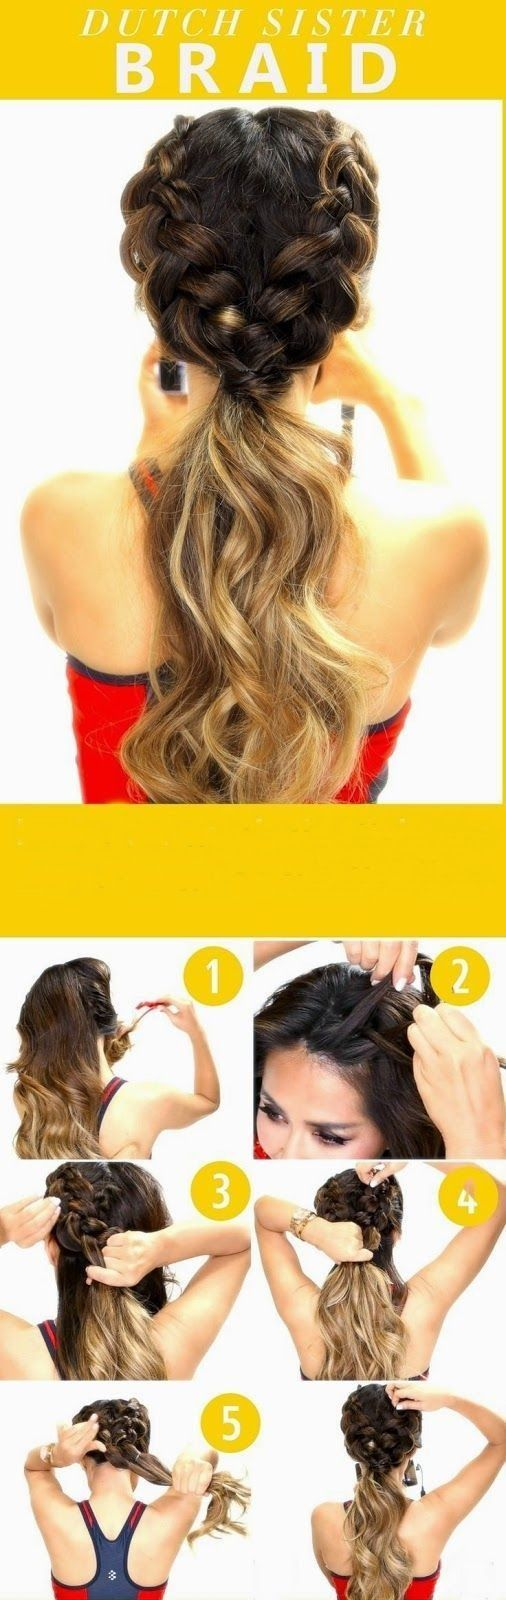 Summer Hairstyles for Girls with Long Hair - Braided Hairstyles with Ponytail